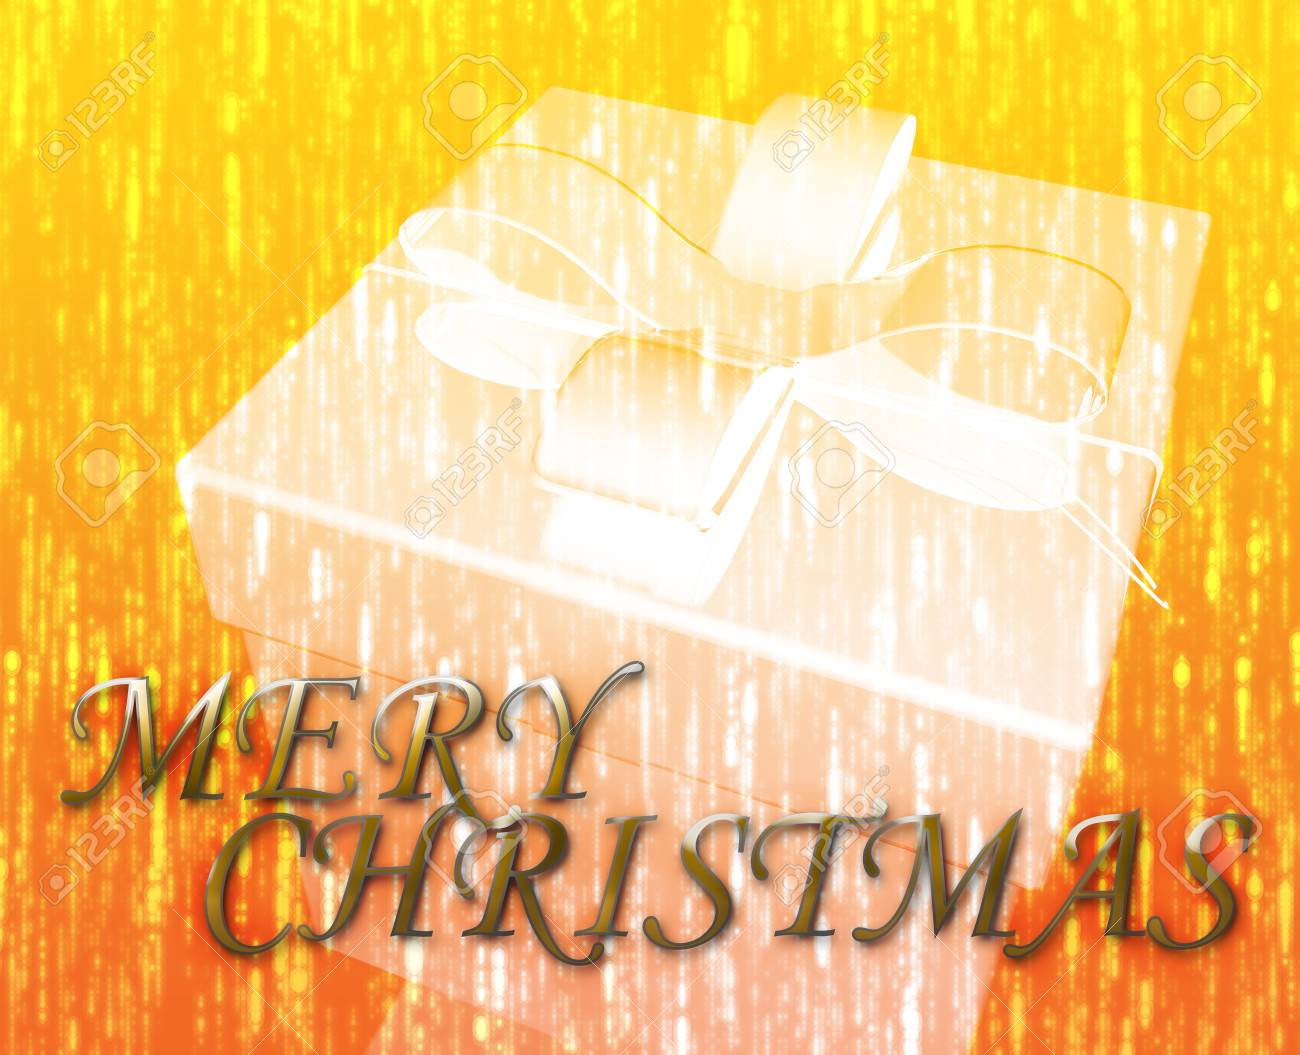 Merry Christmas festive special occasion celebration abstract illustration Stock Illustration - 5158545